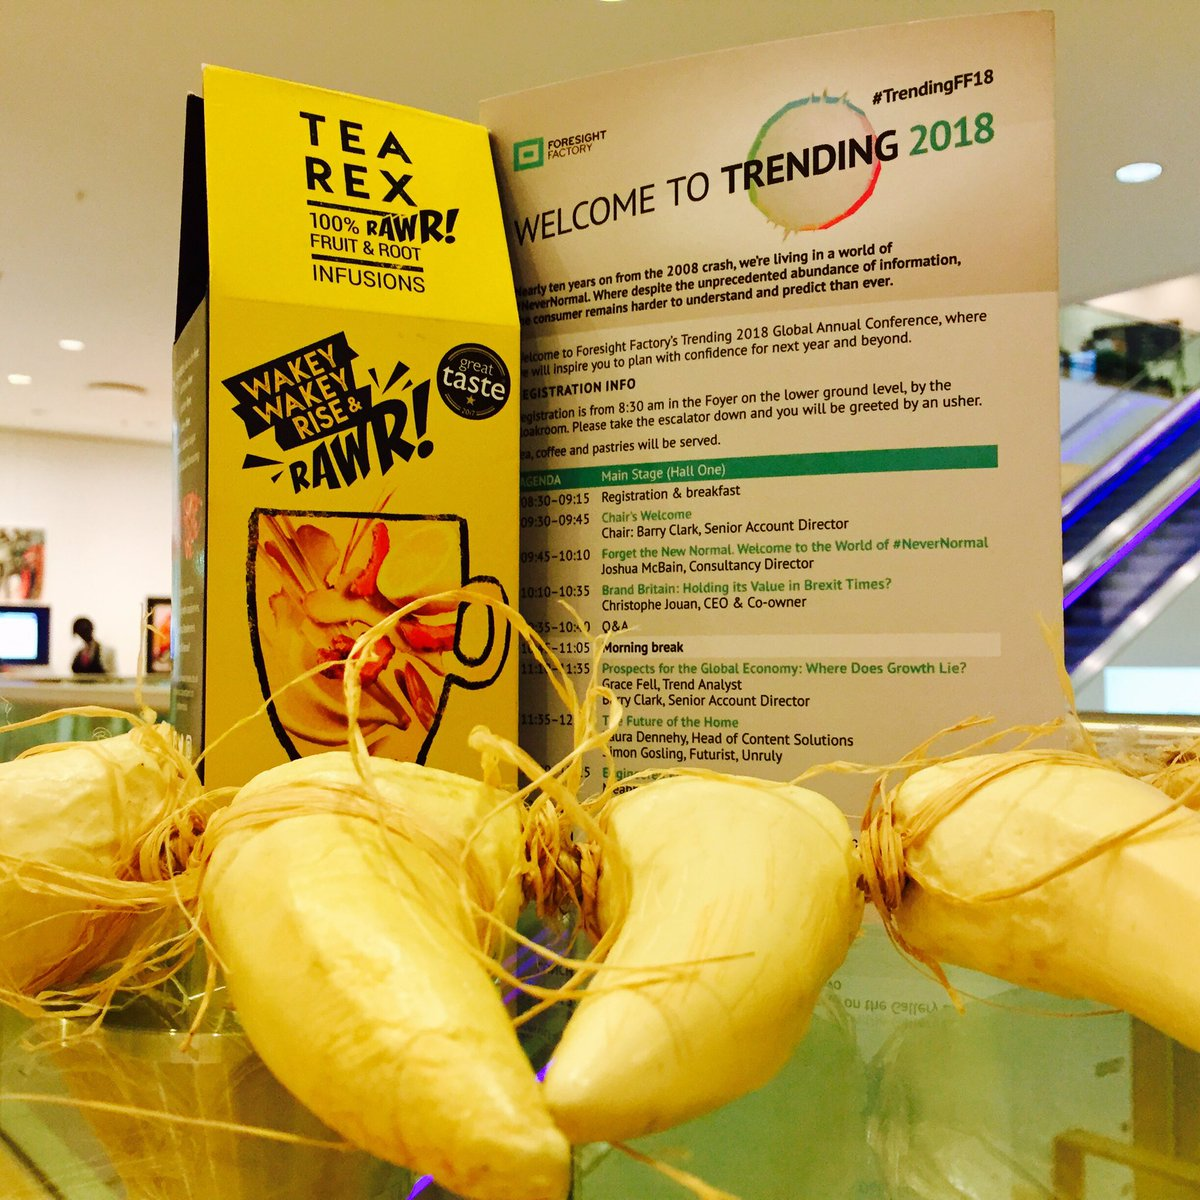 #TEAREX unleashed at #trendingFF18 Taste the world&#39;s 1st FRESH fruit &amp; root infusions @futurethoughts #RAWR <br>http://pic.twitter.com/bDd8wUQJTk